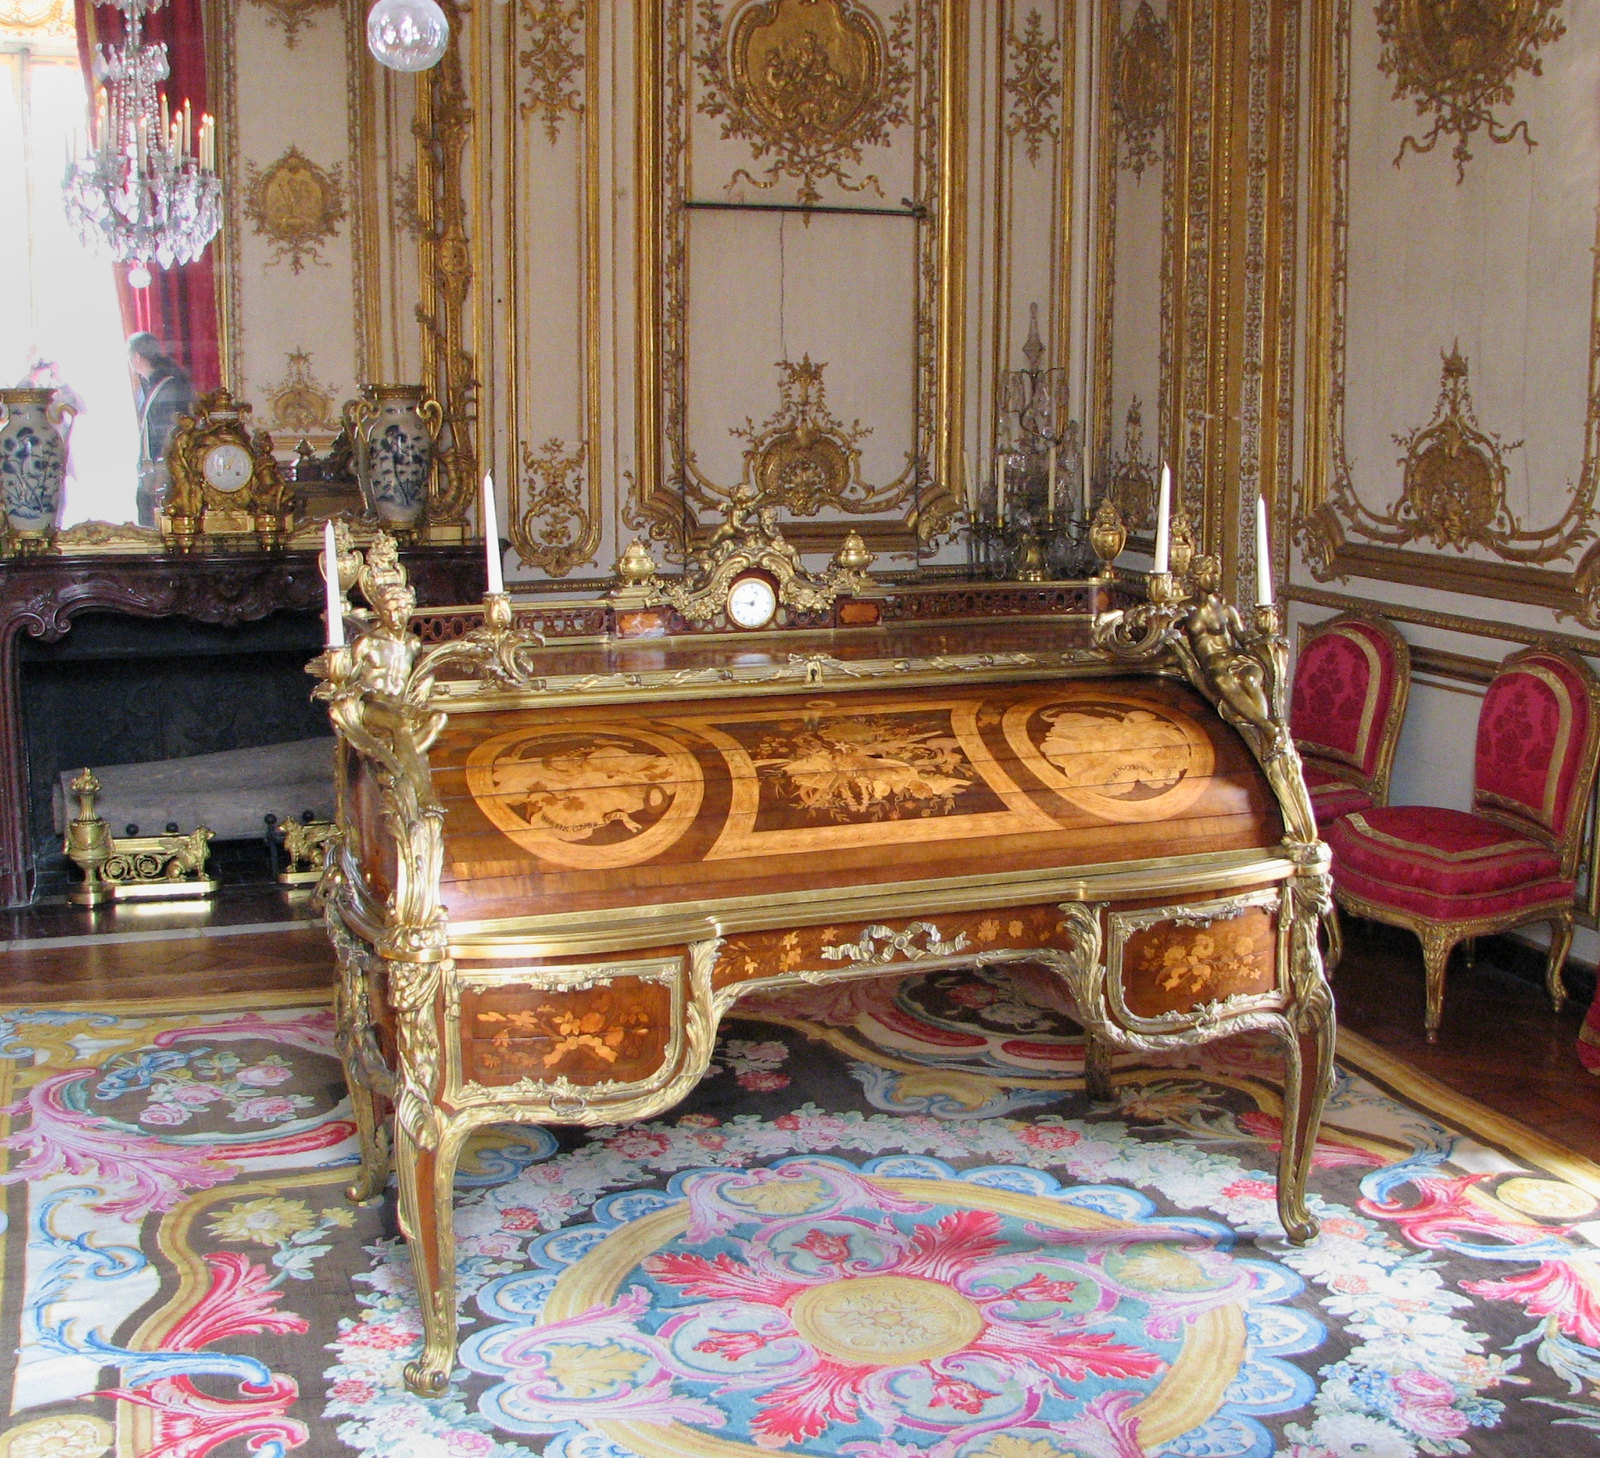 The King's Desk. Louis XV's roll-top secretary, designed between 1760 and 1769. Credit TCY